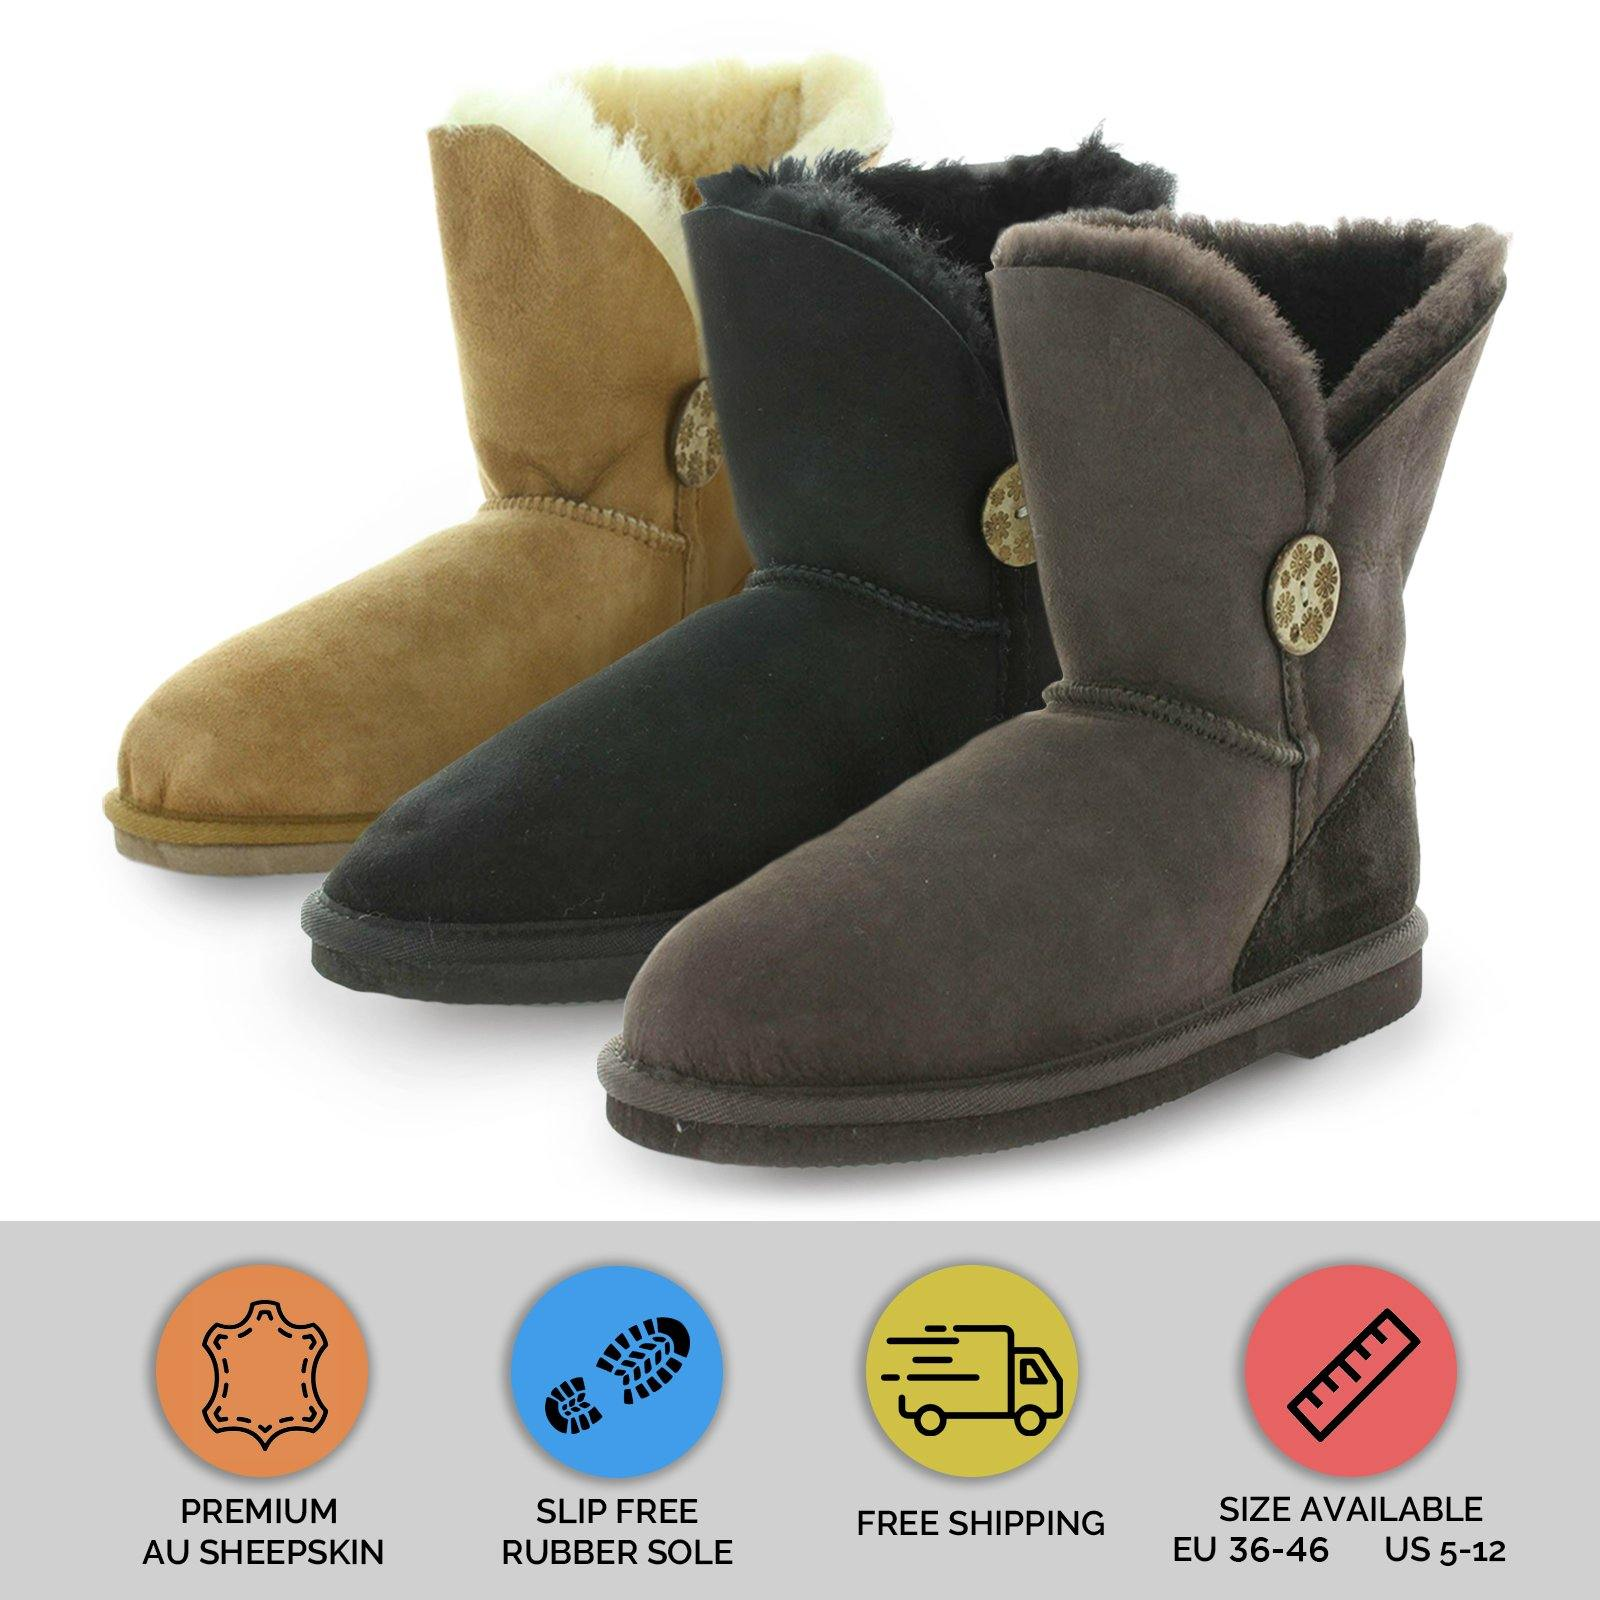 NOOSA SHORT BOOTS by YELLOW EARTH - iShoes - Sale, Women's Shoes, Women's Shoes: Slippers - FOOTWEAR-FOOTWEAR